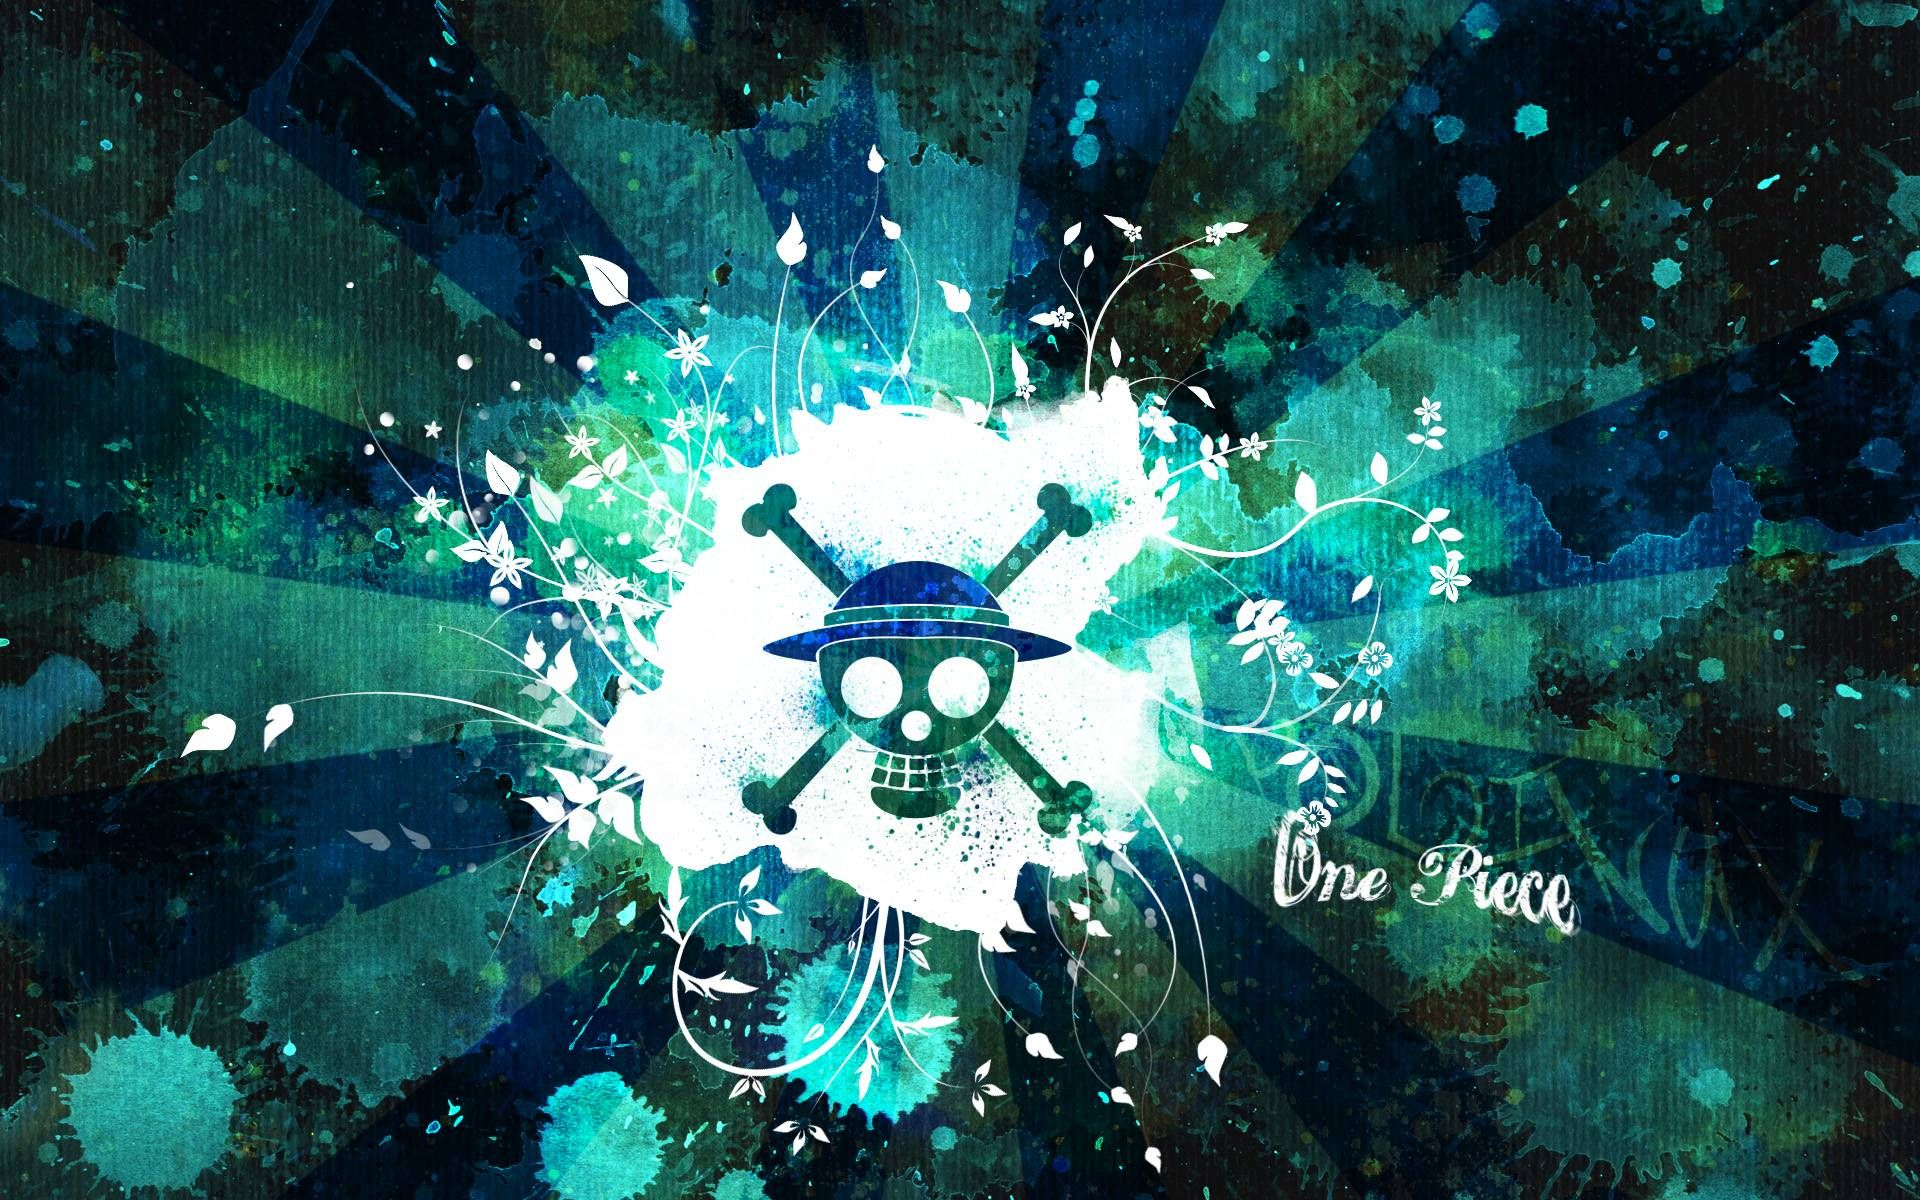 One Piece 3d Wallpapers 1080p For Desktop Background Wallpaper 1920x1200 Px 389 43 Kb Seni Doodle Bunga Doodle